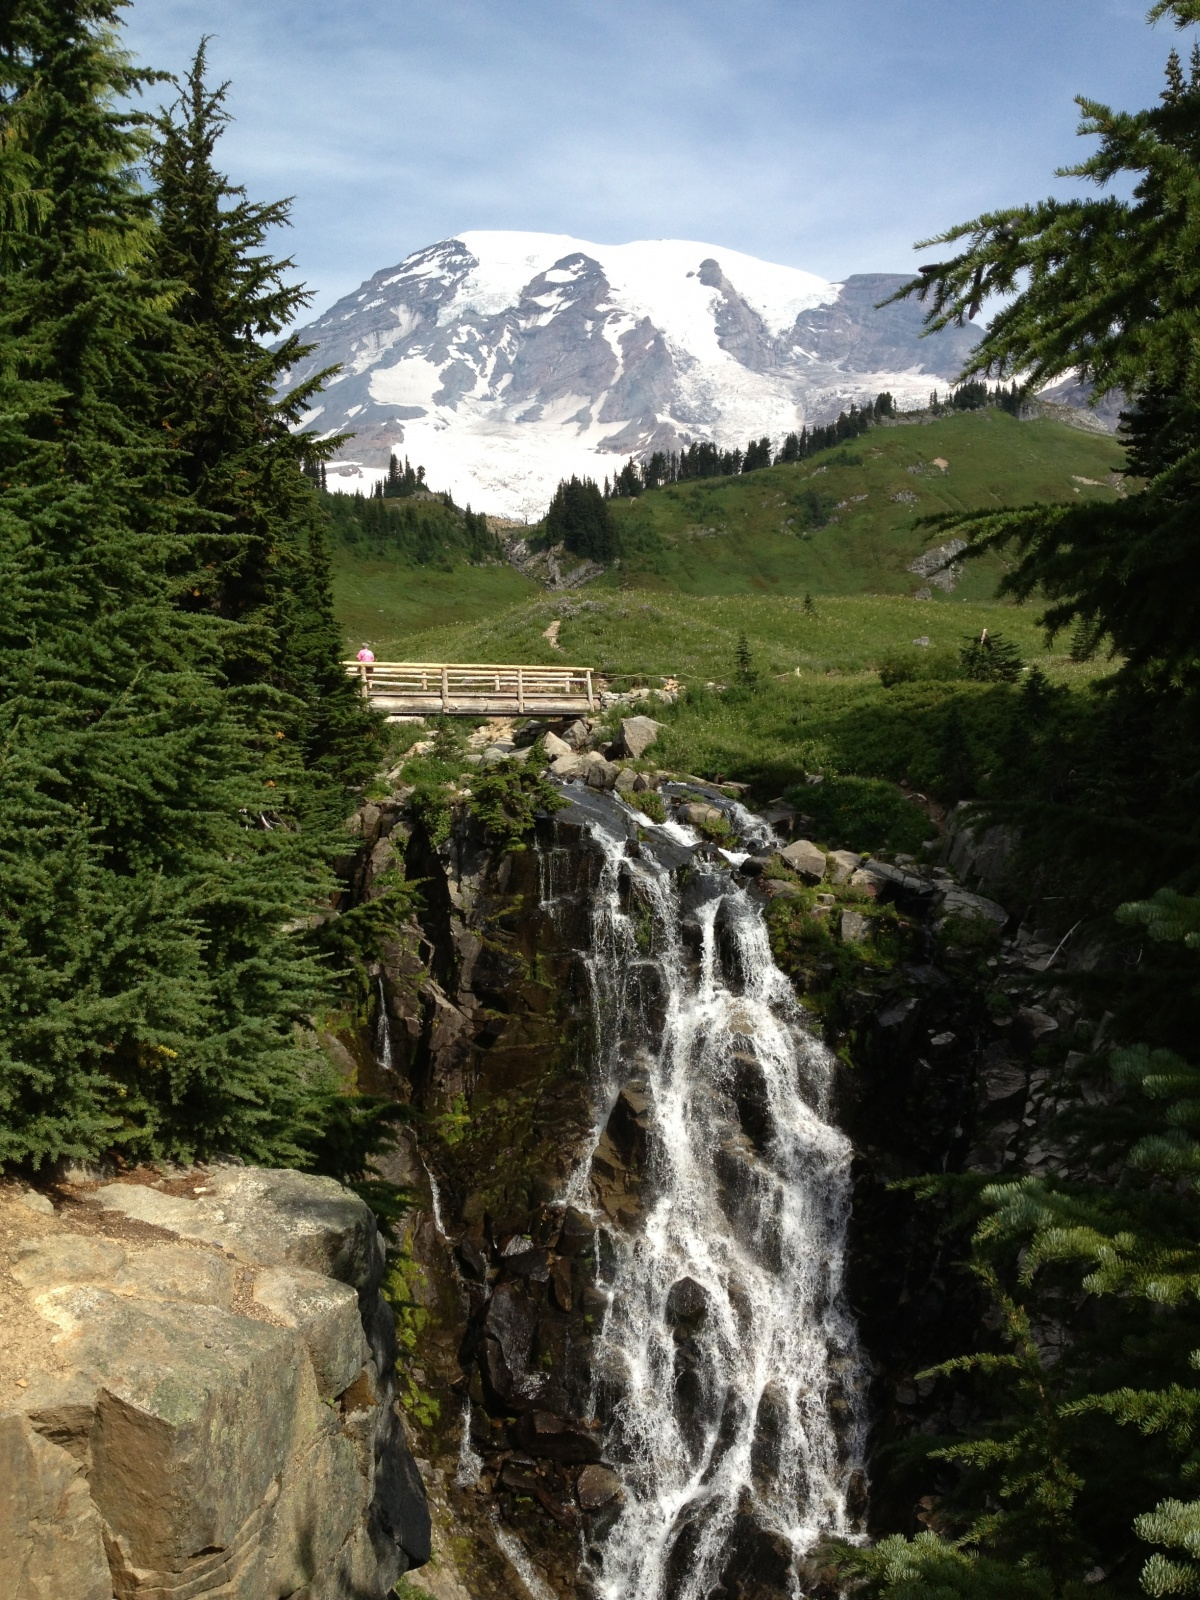 Mt Rainier at Edith creek and or Myrtle Falls